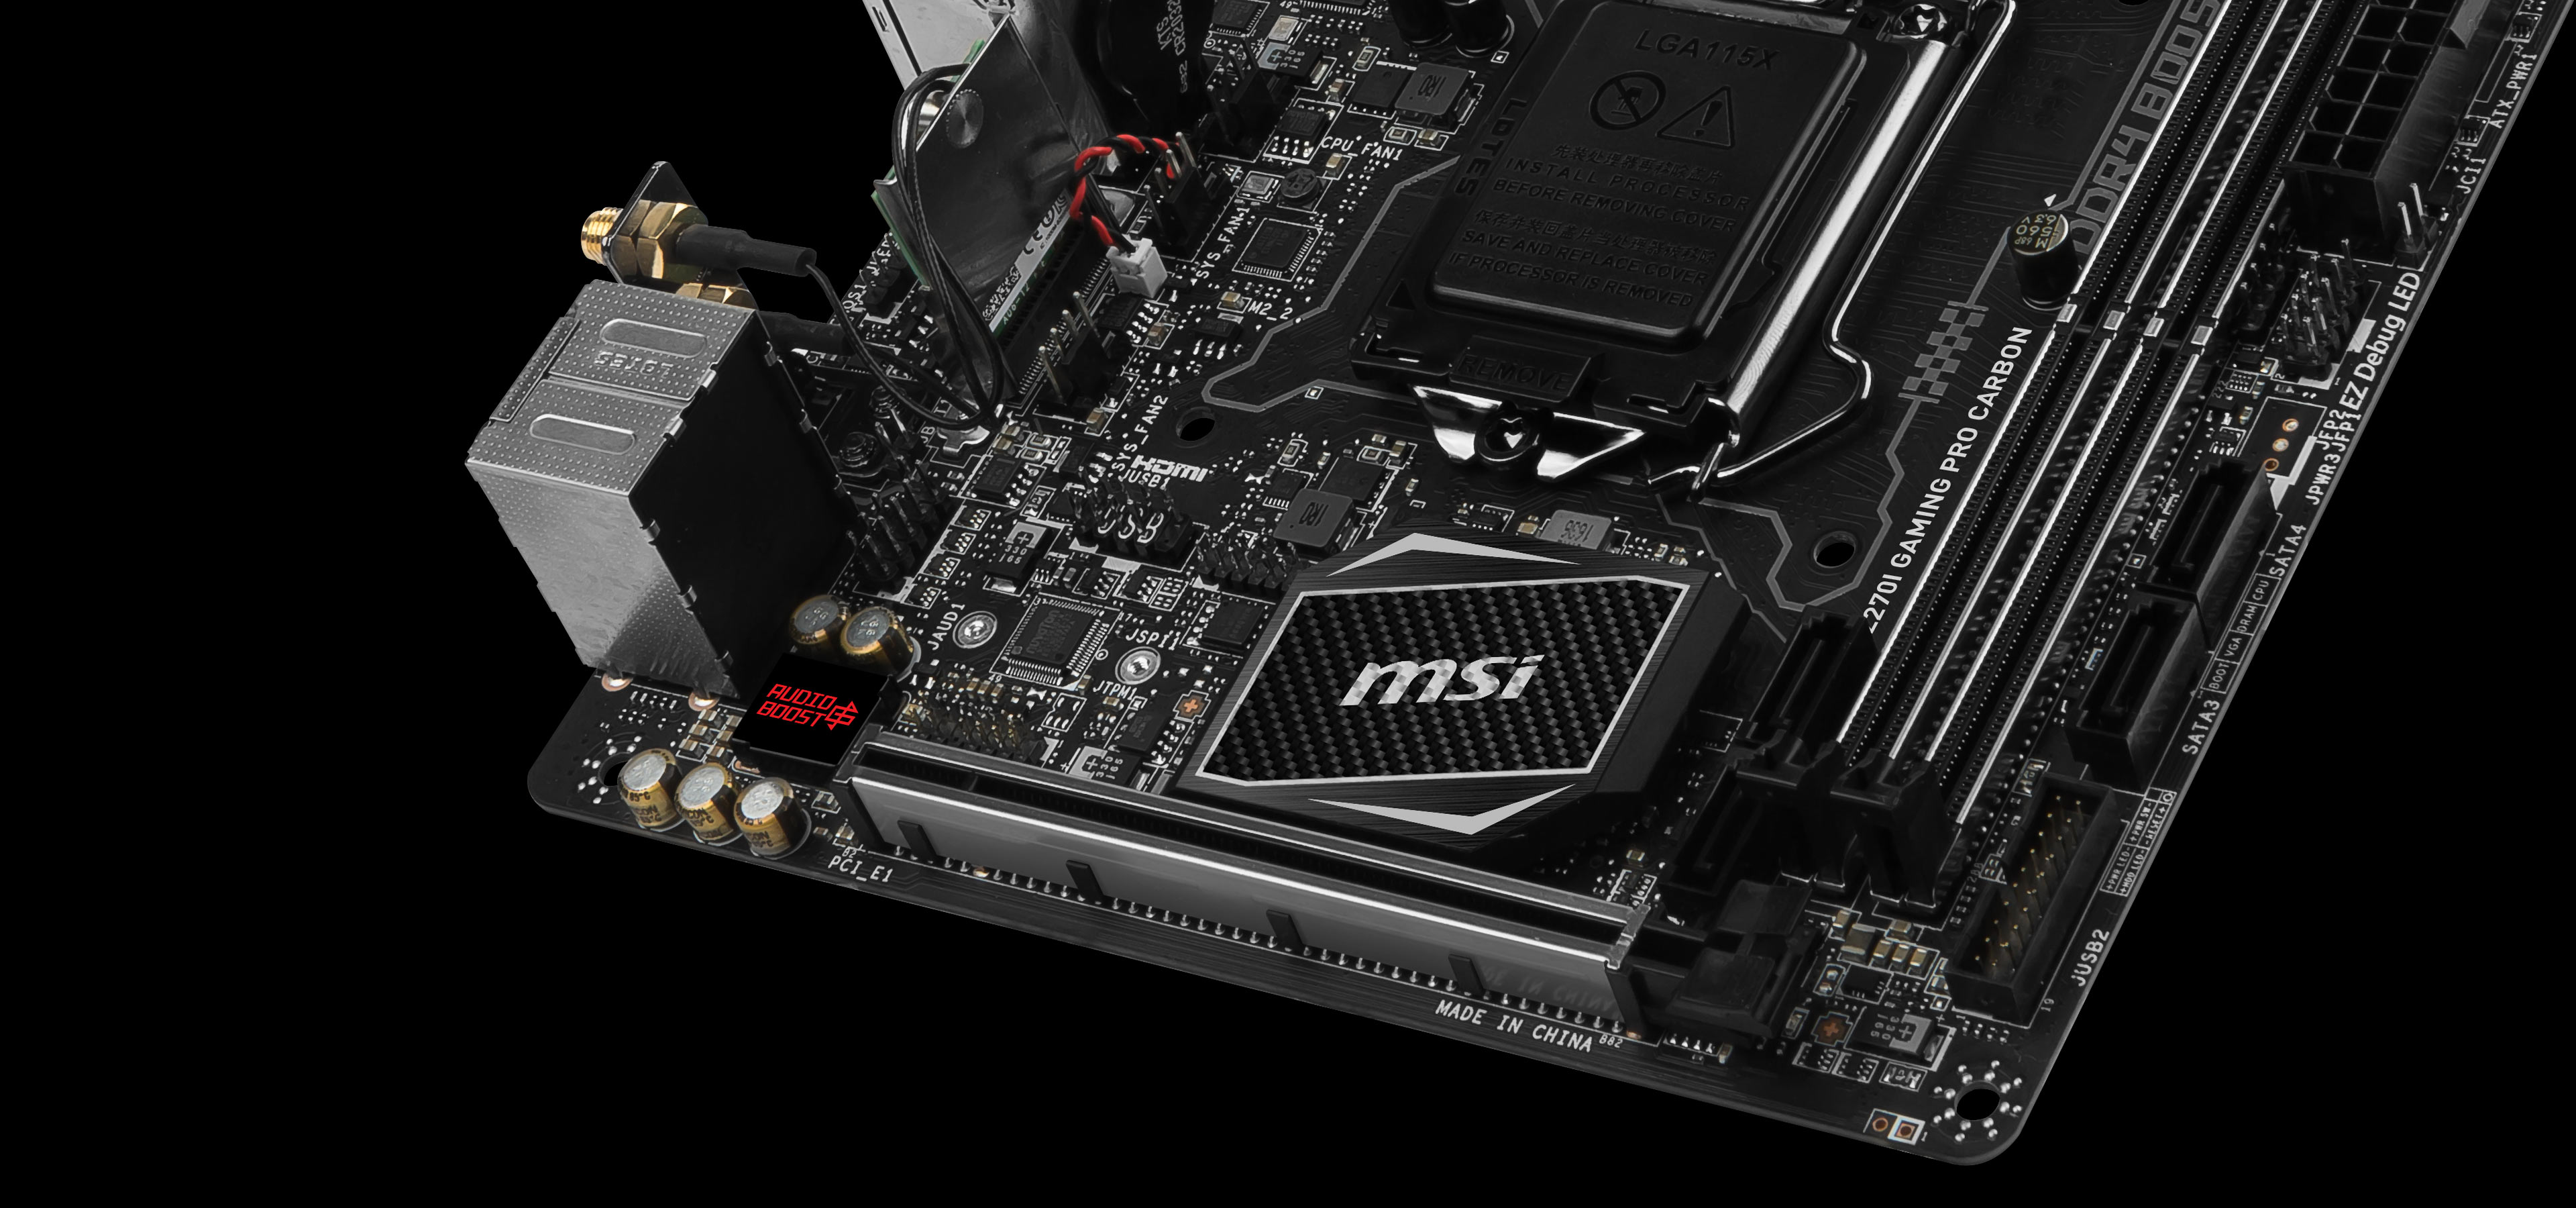 MSI Z270I Gaming Pro Carbon AC LGA1151 Mini-ITX Motherboard